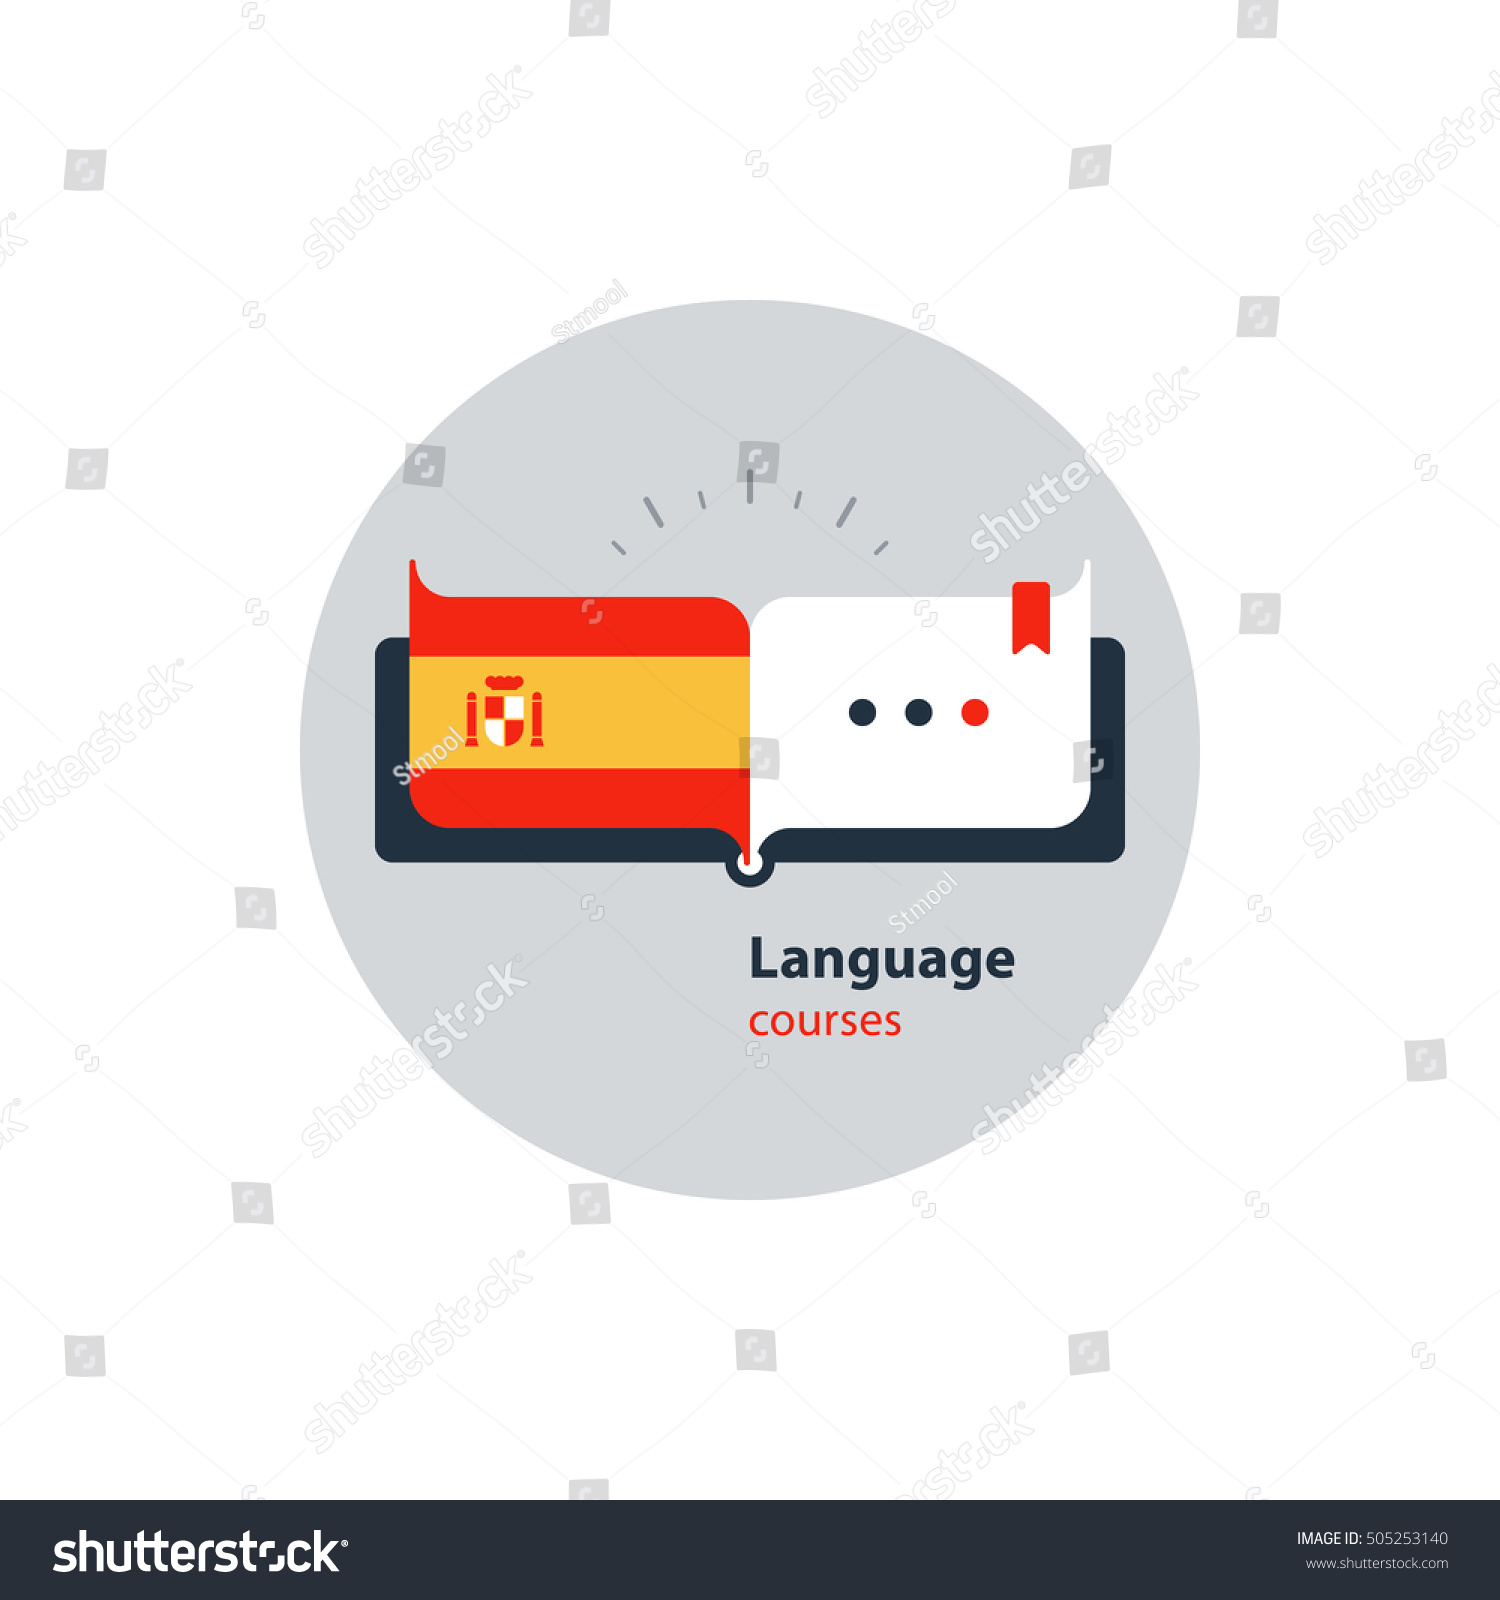 Spanish language courses advertising concept Fluent speaking foreign language Advertising concept lingual classes Flat design vector illustration